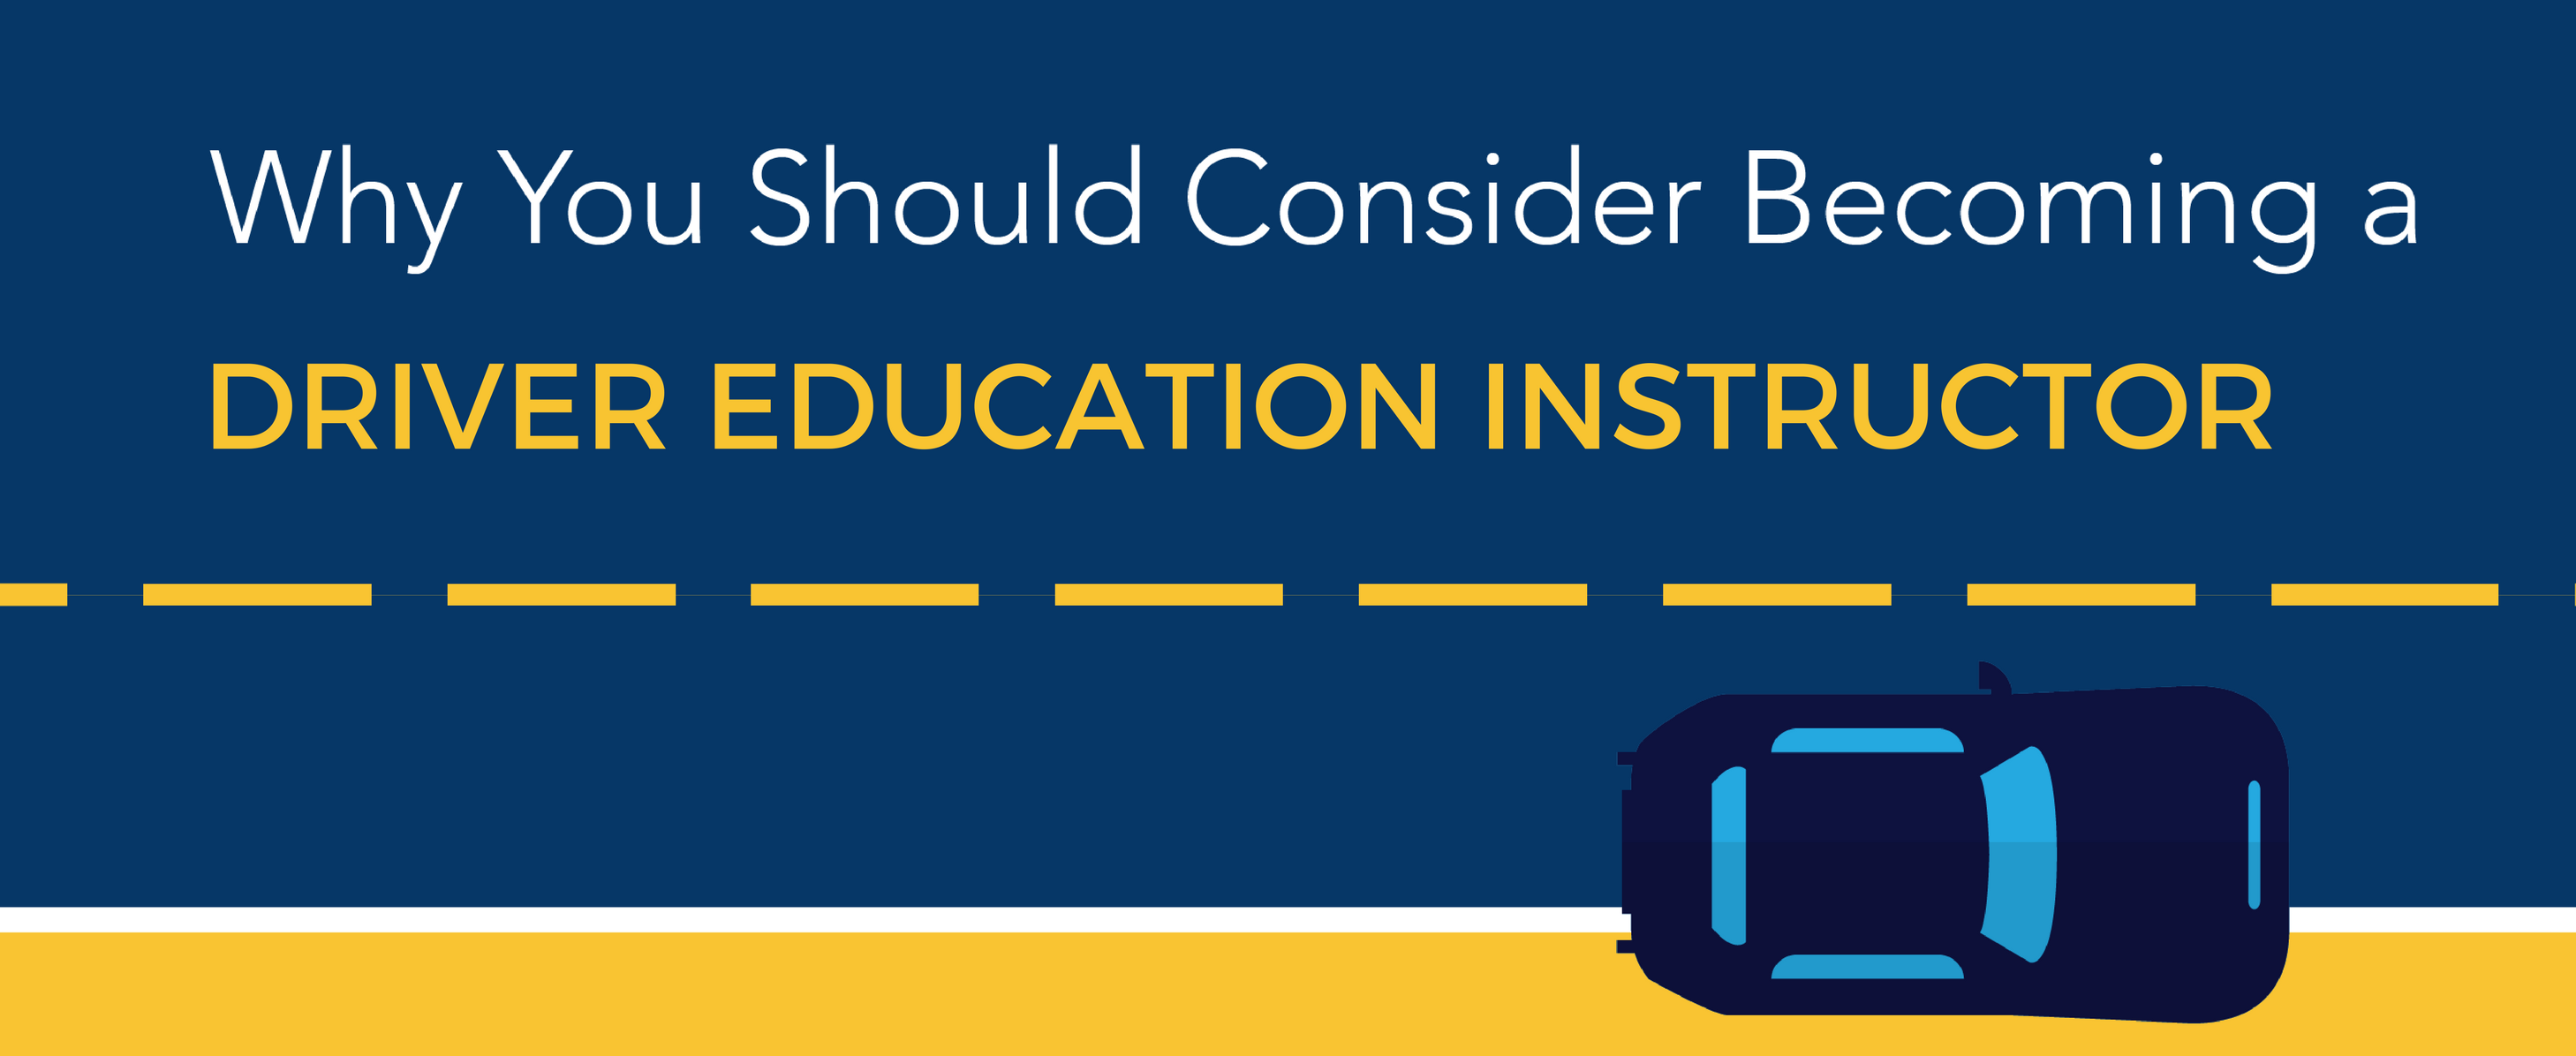 Why you should consider becoming a driver education instructor